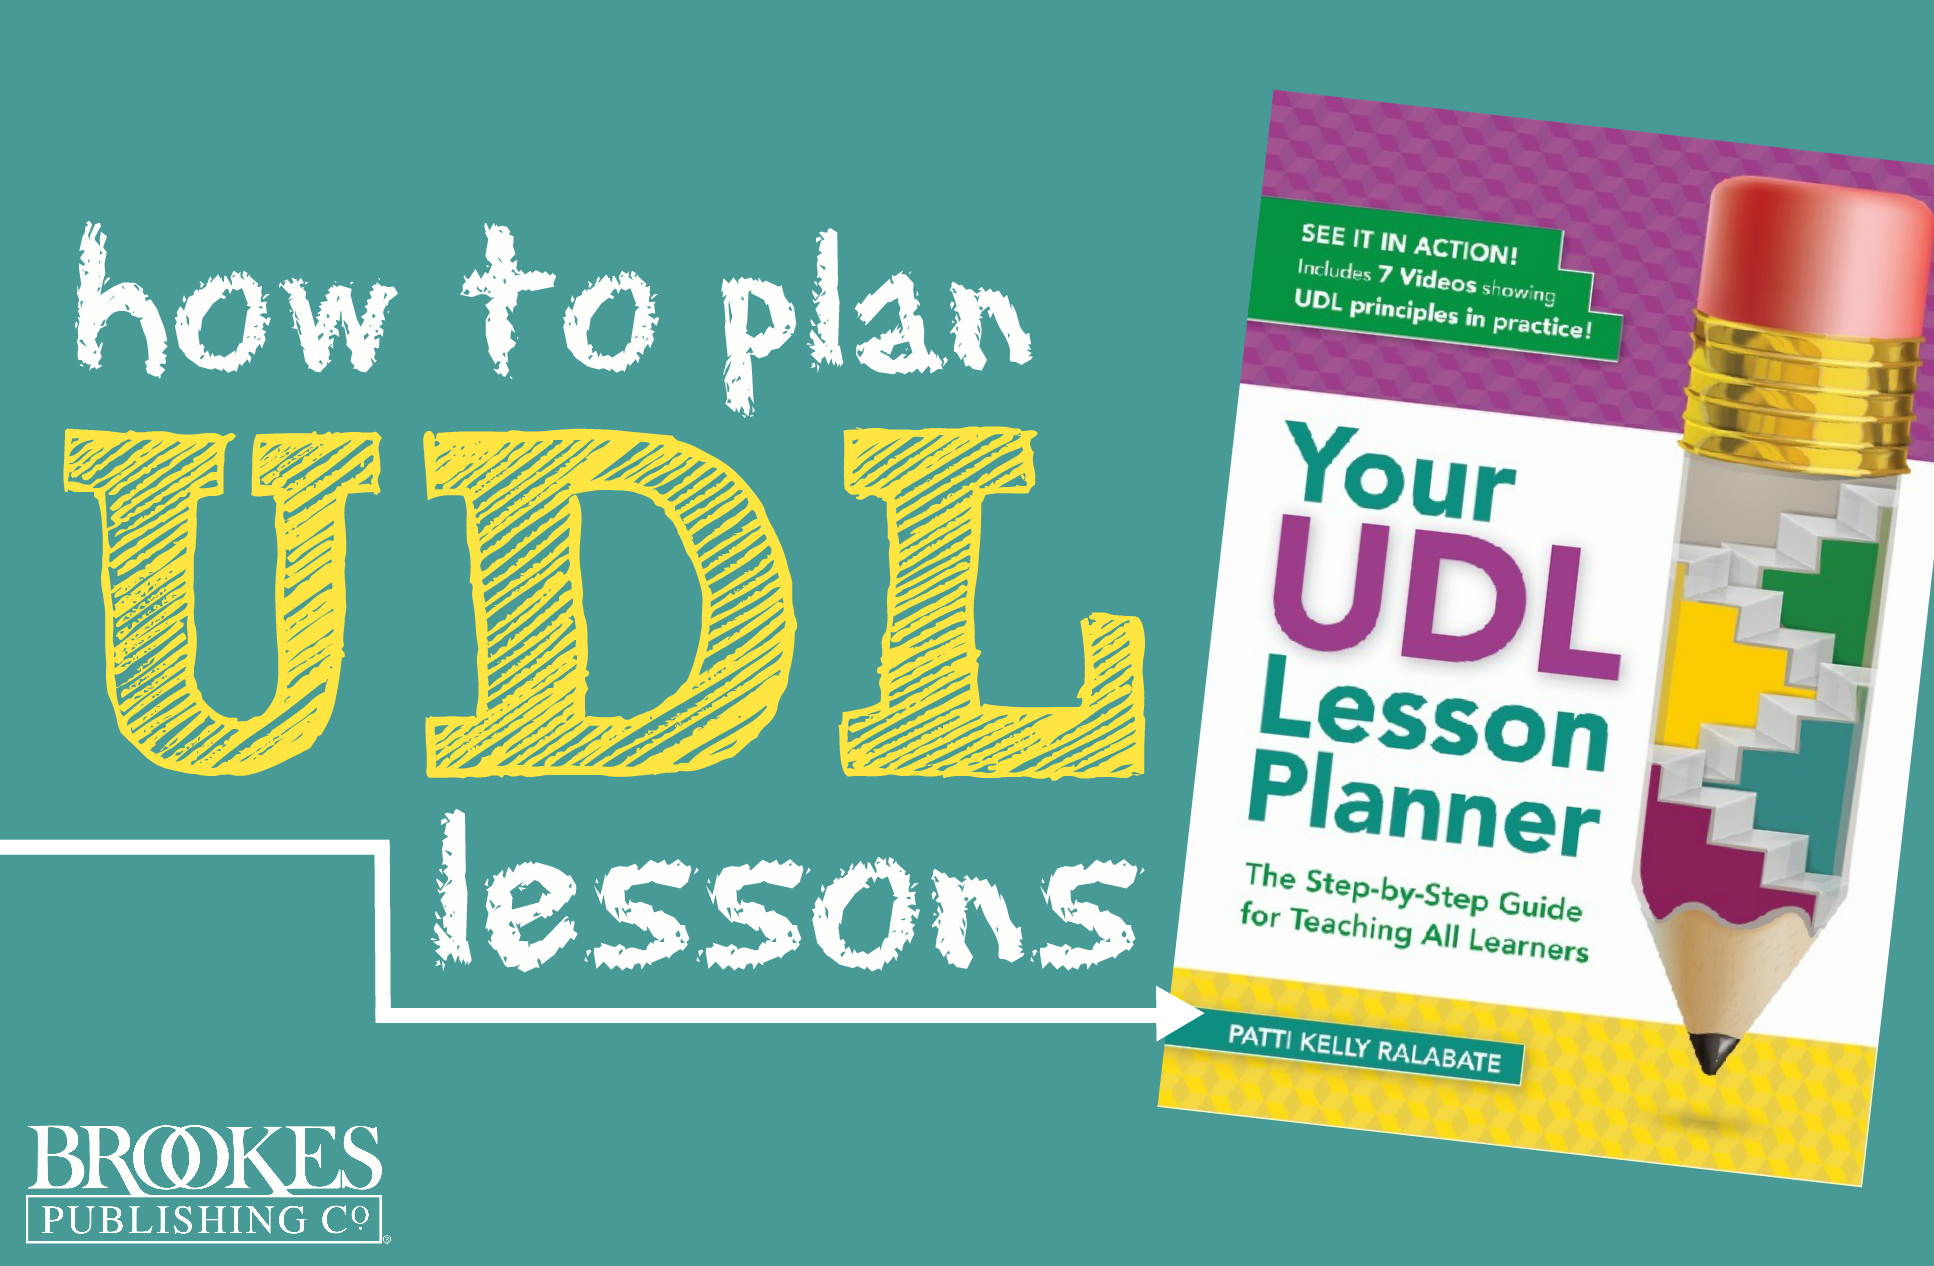 Iep Planning Accommodations Modifications Smart Kids >> 6 Steps To Planning Udl Lessons 3 Teacher Stories